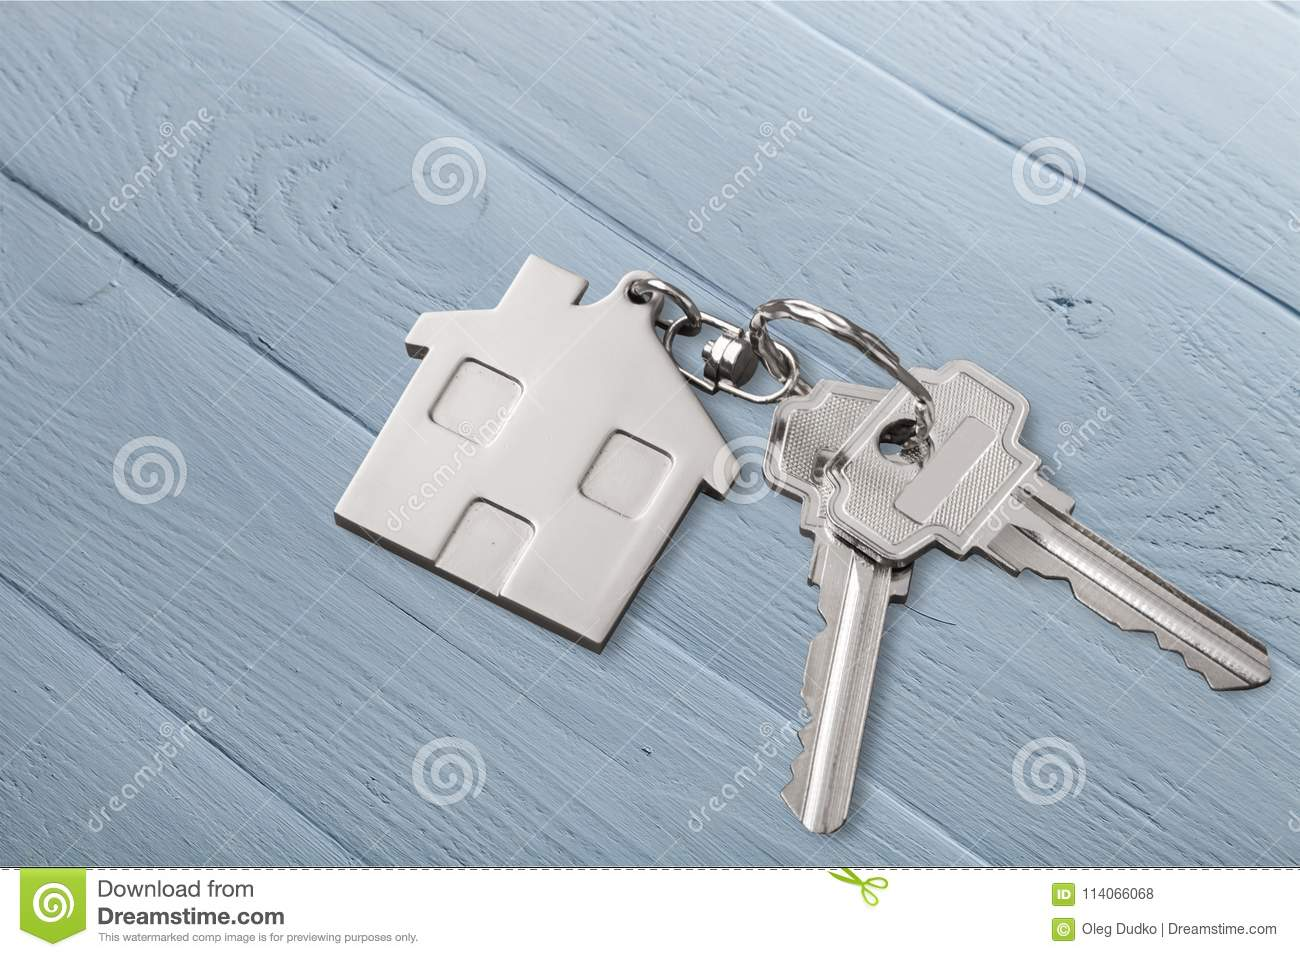 House key on the table stock photo. Image of owner, wealth ...